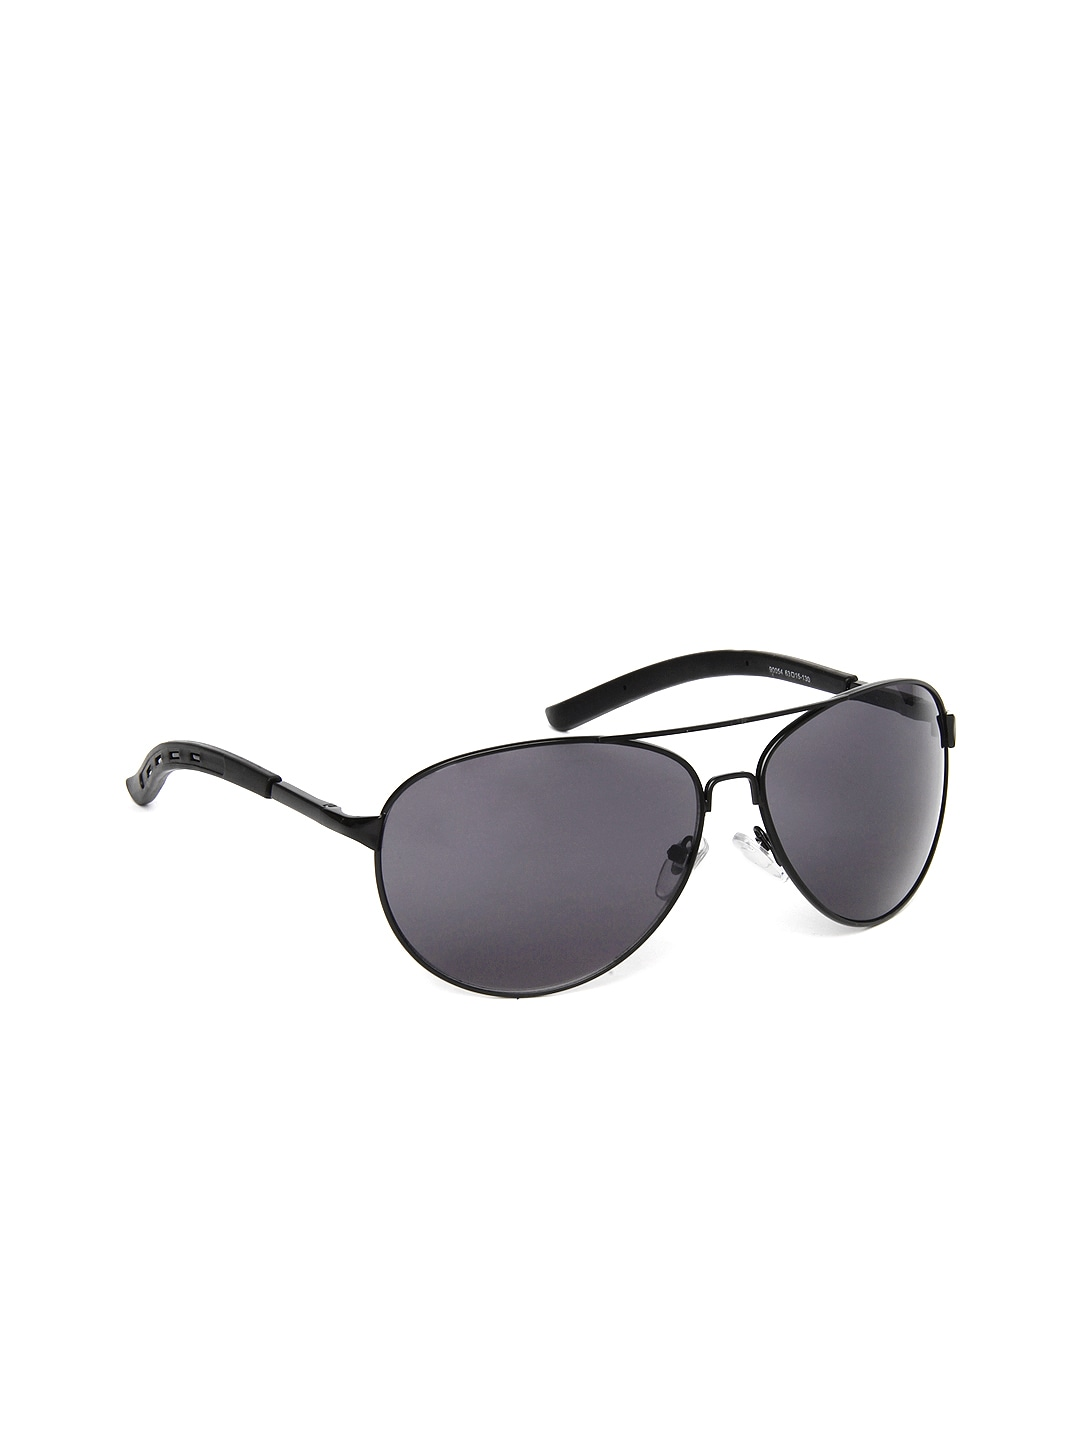 best buy sunglasses  castagnino sunglasses